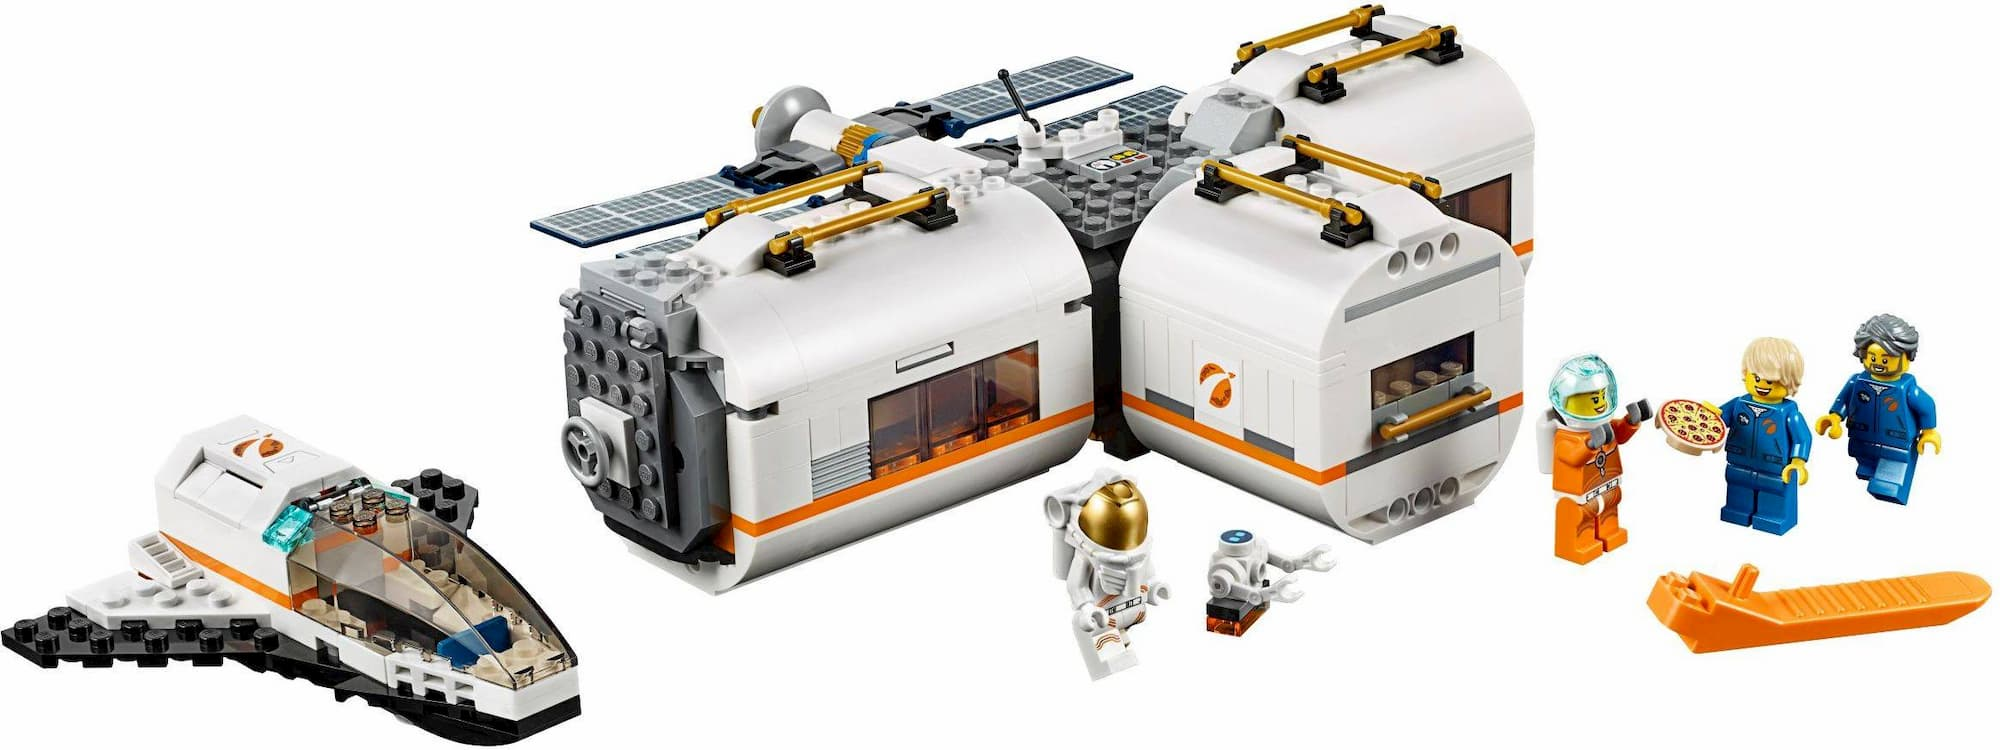 A Lego lunar space station